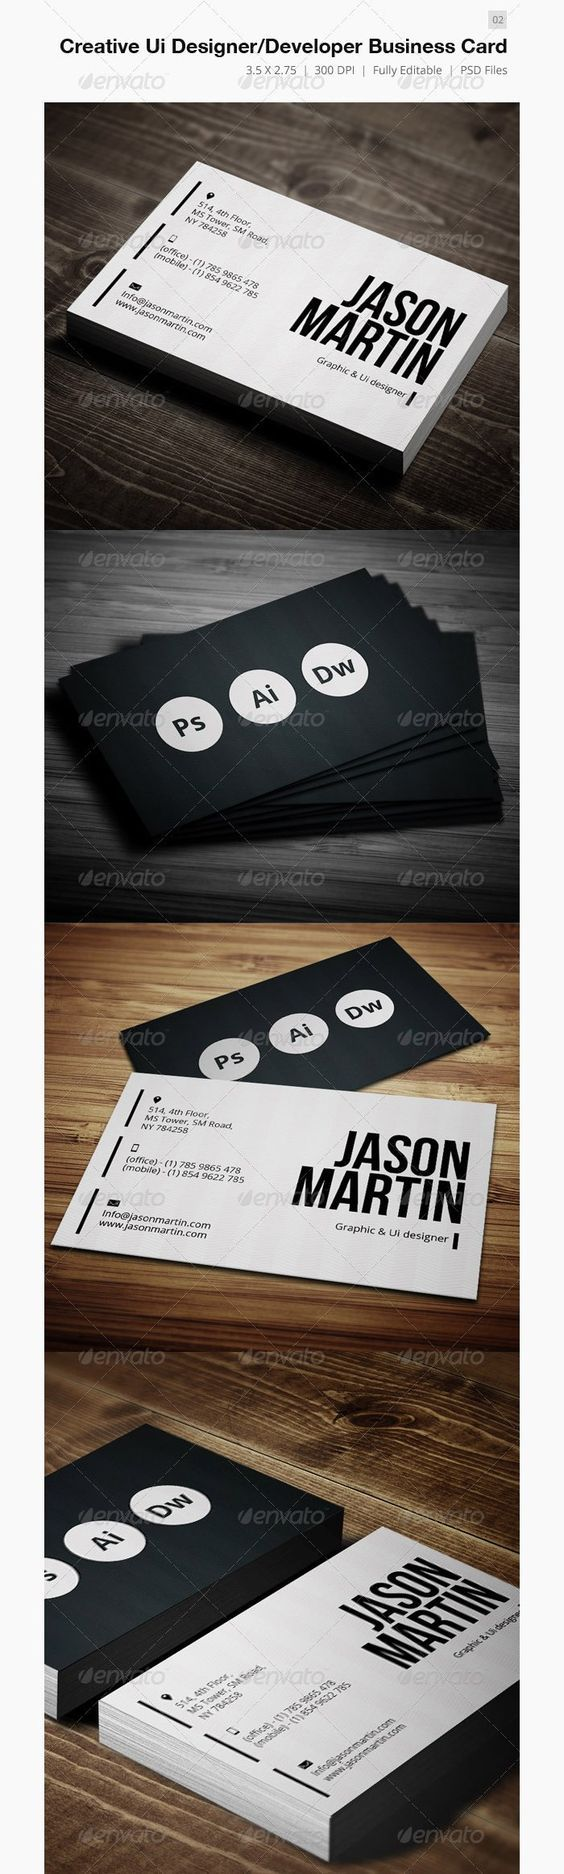 76 best Business Cards images on Pinterest | Business cards ...